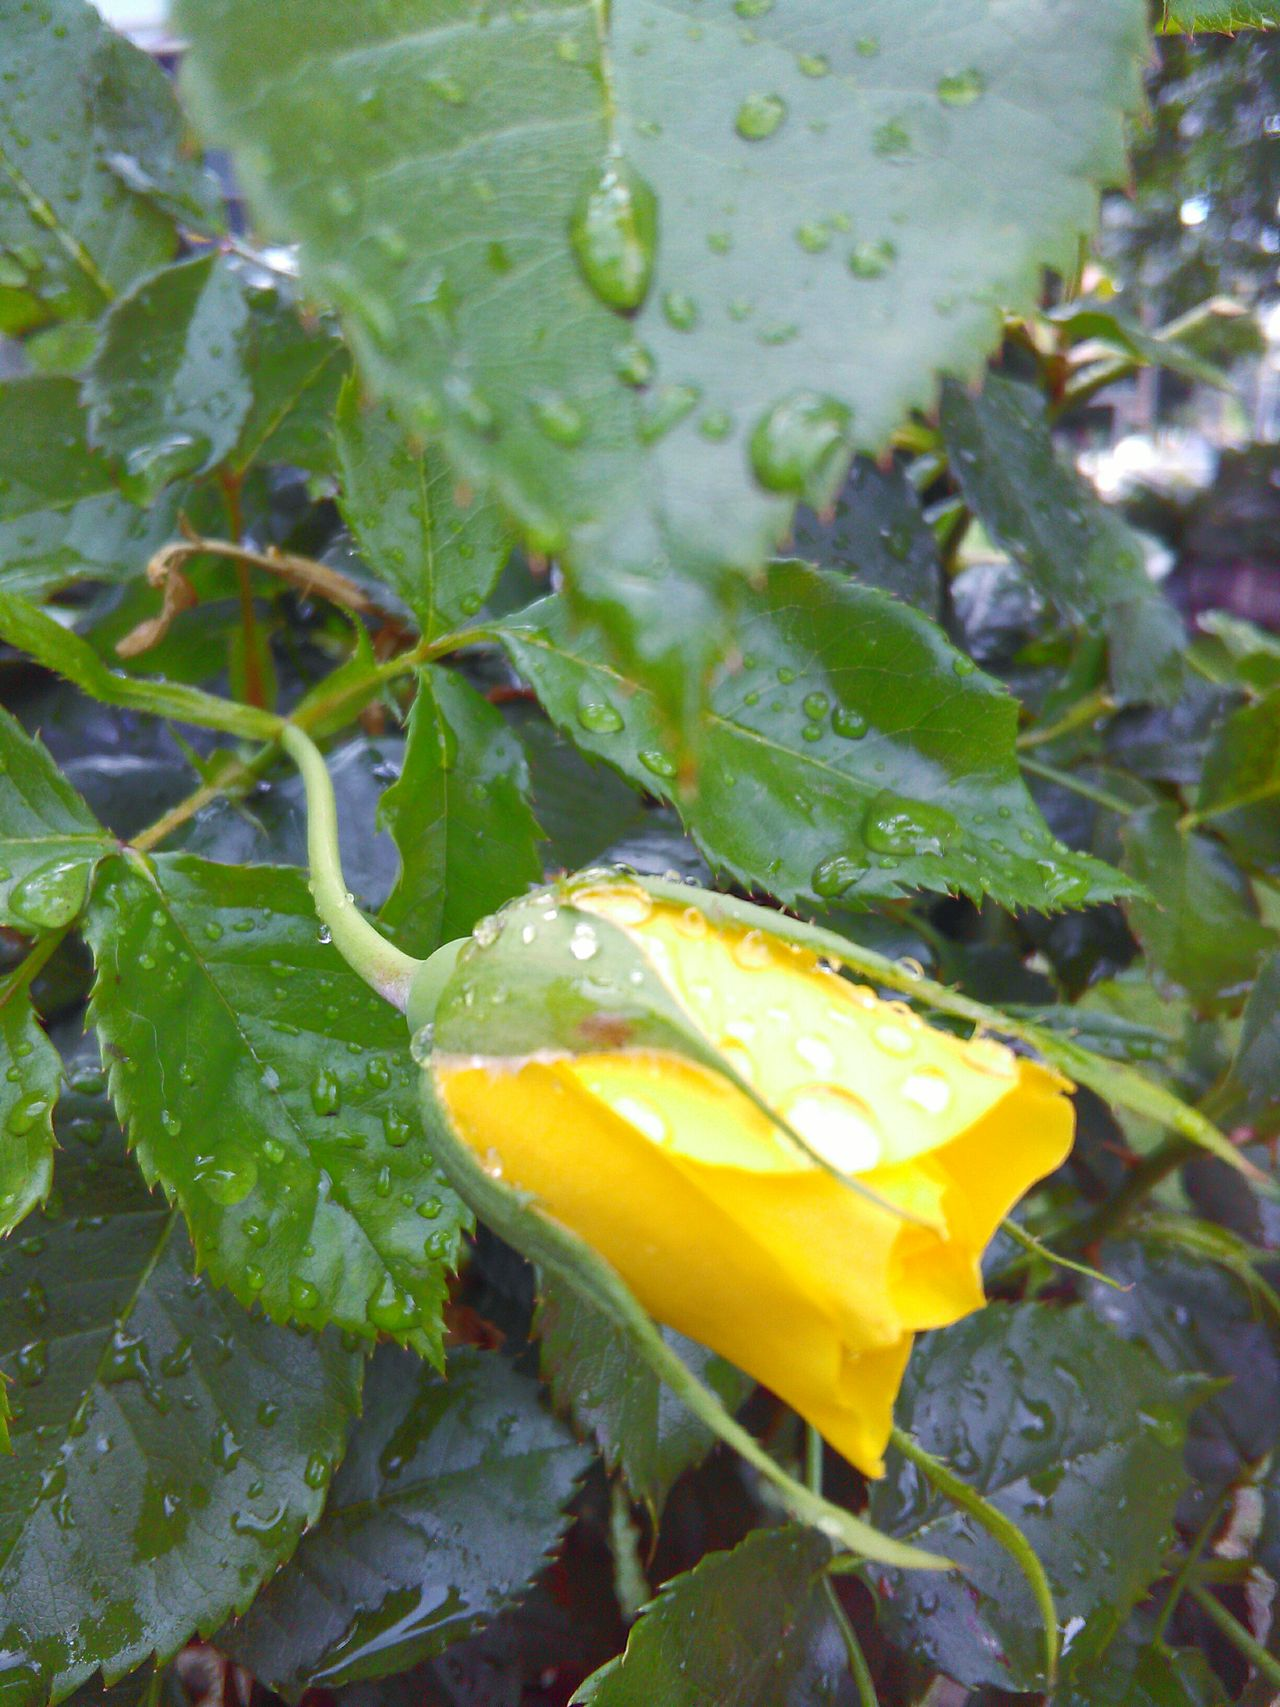 Mother Nature Leaves🌿 Rain Drops On Leaves Rain Drops On Flowers My Photography Flowers,Plants & Garden Rainy Days☔ Rain Drops On Petals Flower Porn Rain Drops On Rose Depth Of Field